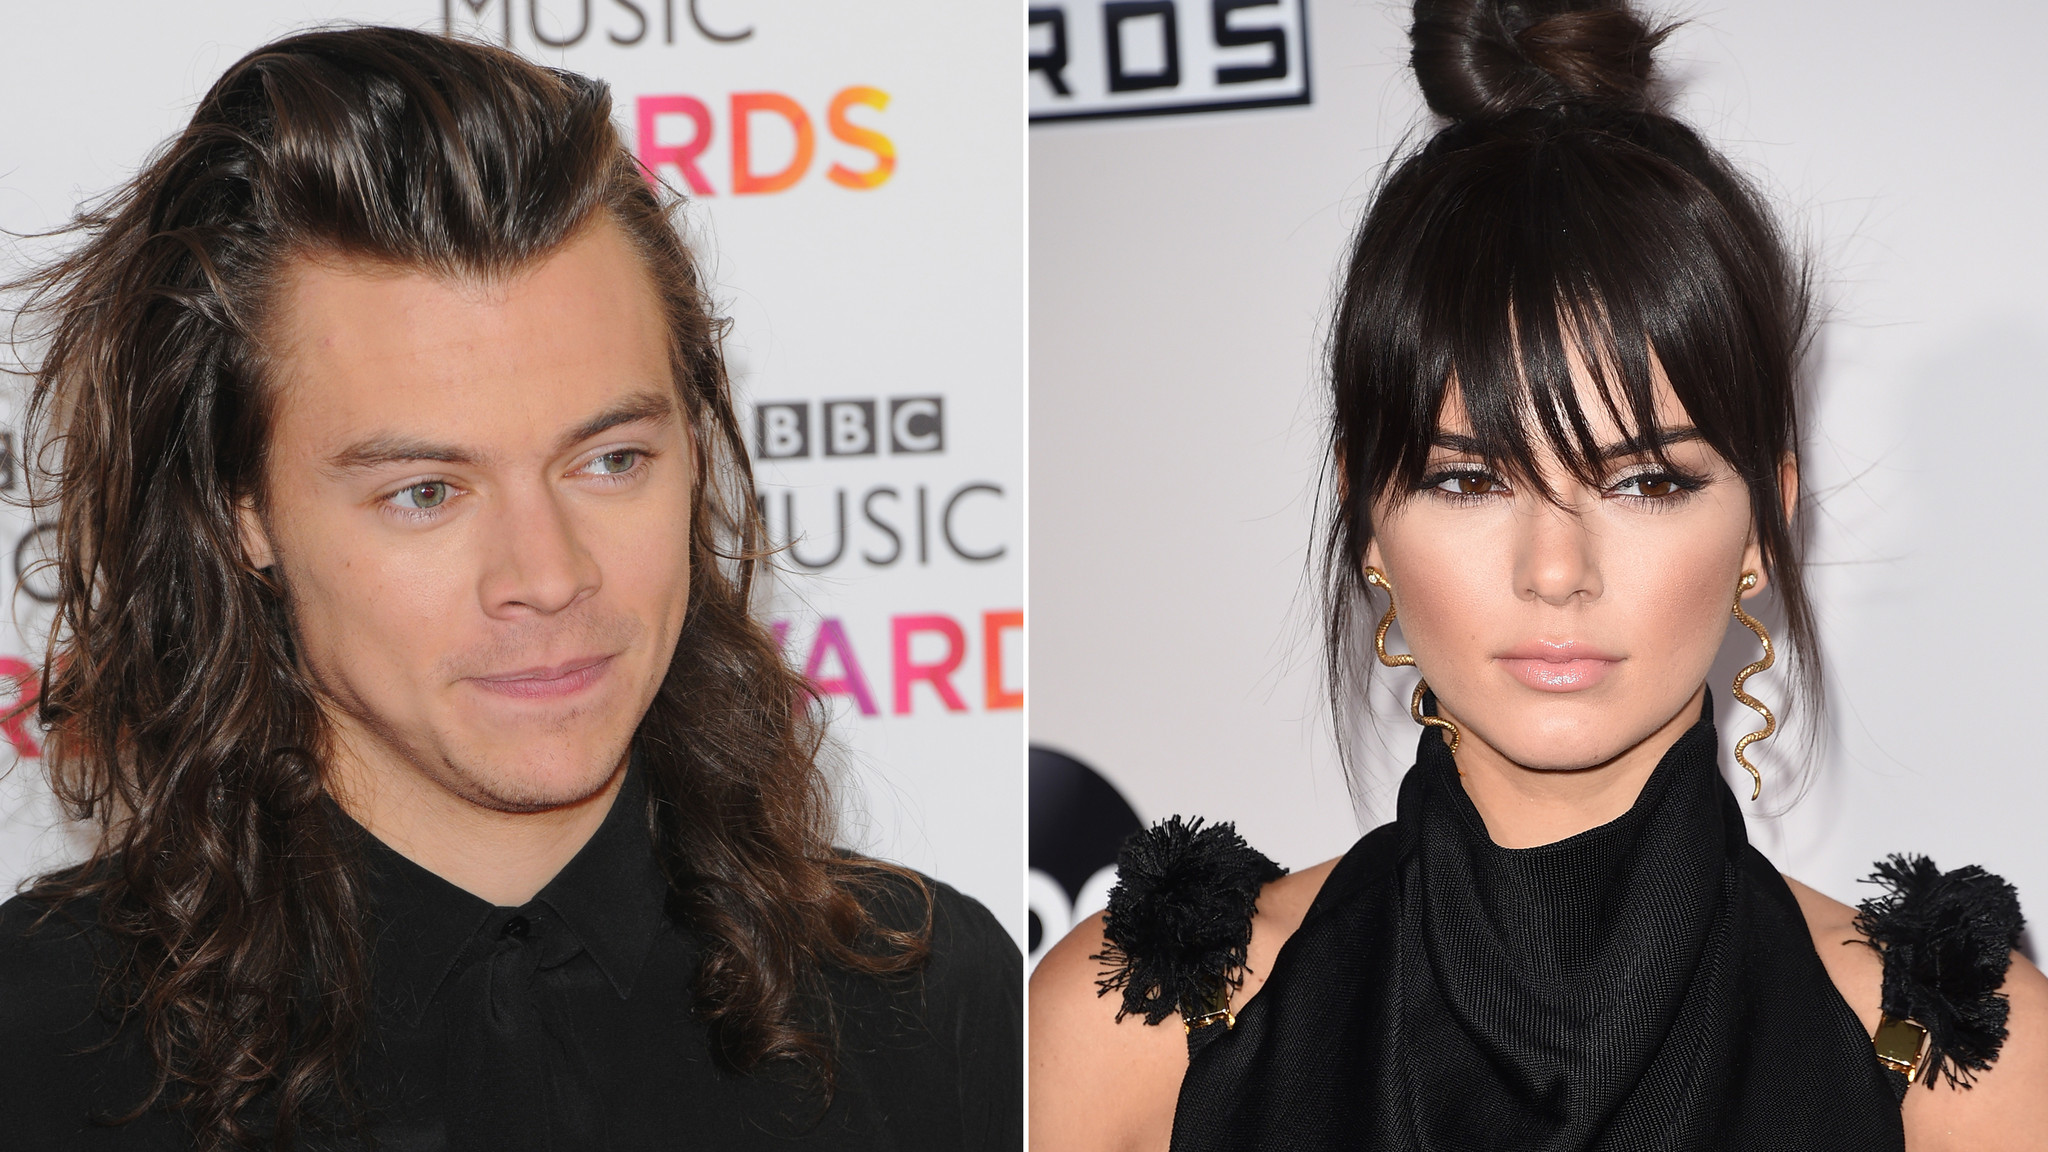 kendall jenner and harry styles dating Instagram/ kendalljenner kendall jenner is harry styles dating kendall jenner earlier this week, the one direction member and the model were spotted together at a restaurant called blanchard's on the british island of anguilla.